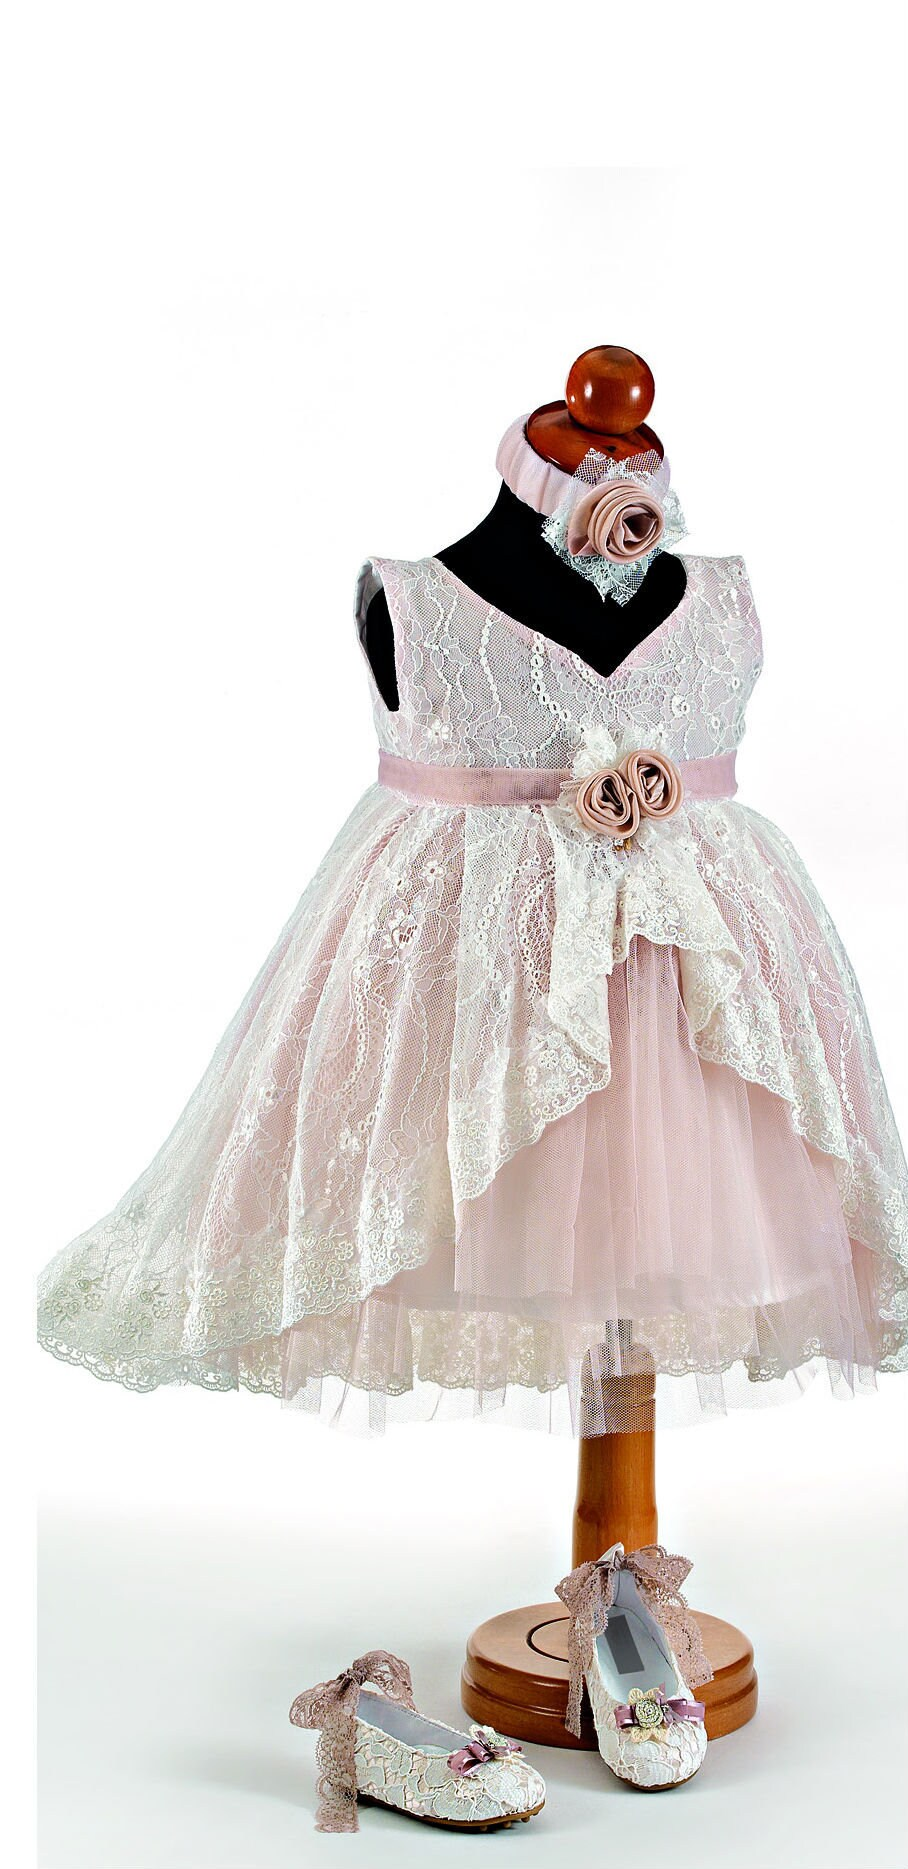 Baby Girl Wedding Dress Outfit Shoes Options Lace White Flowergirl Gown Greek Orthodox Baptism Party Wedding Baby Couture Tail Fashion